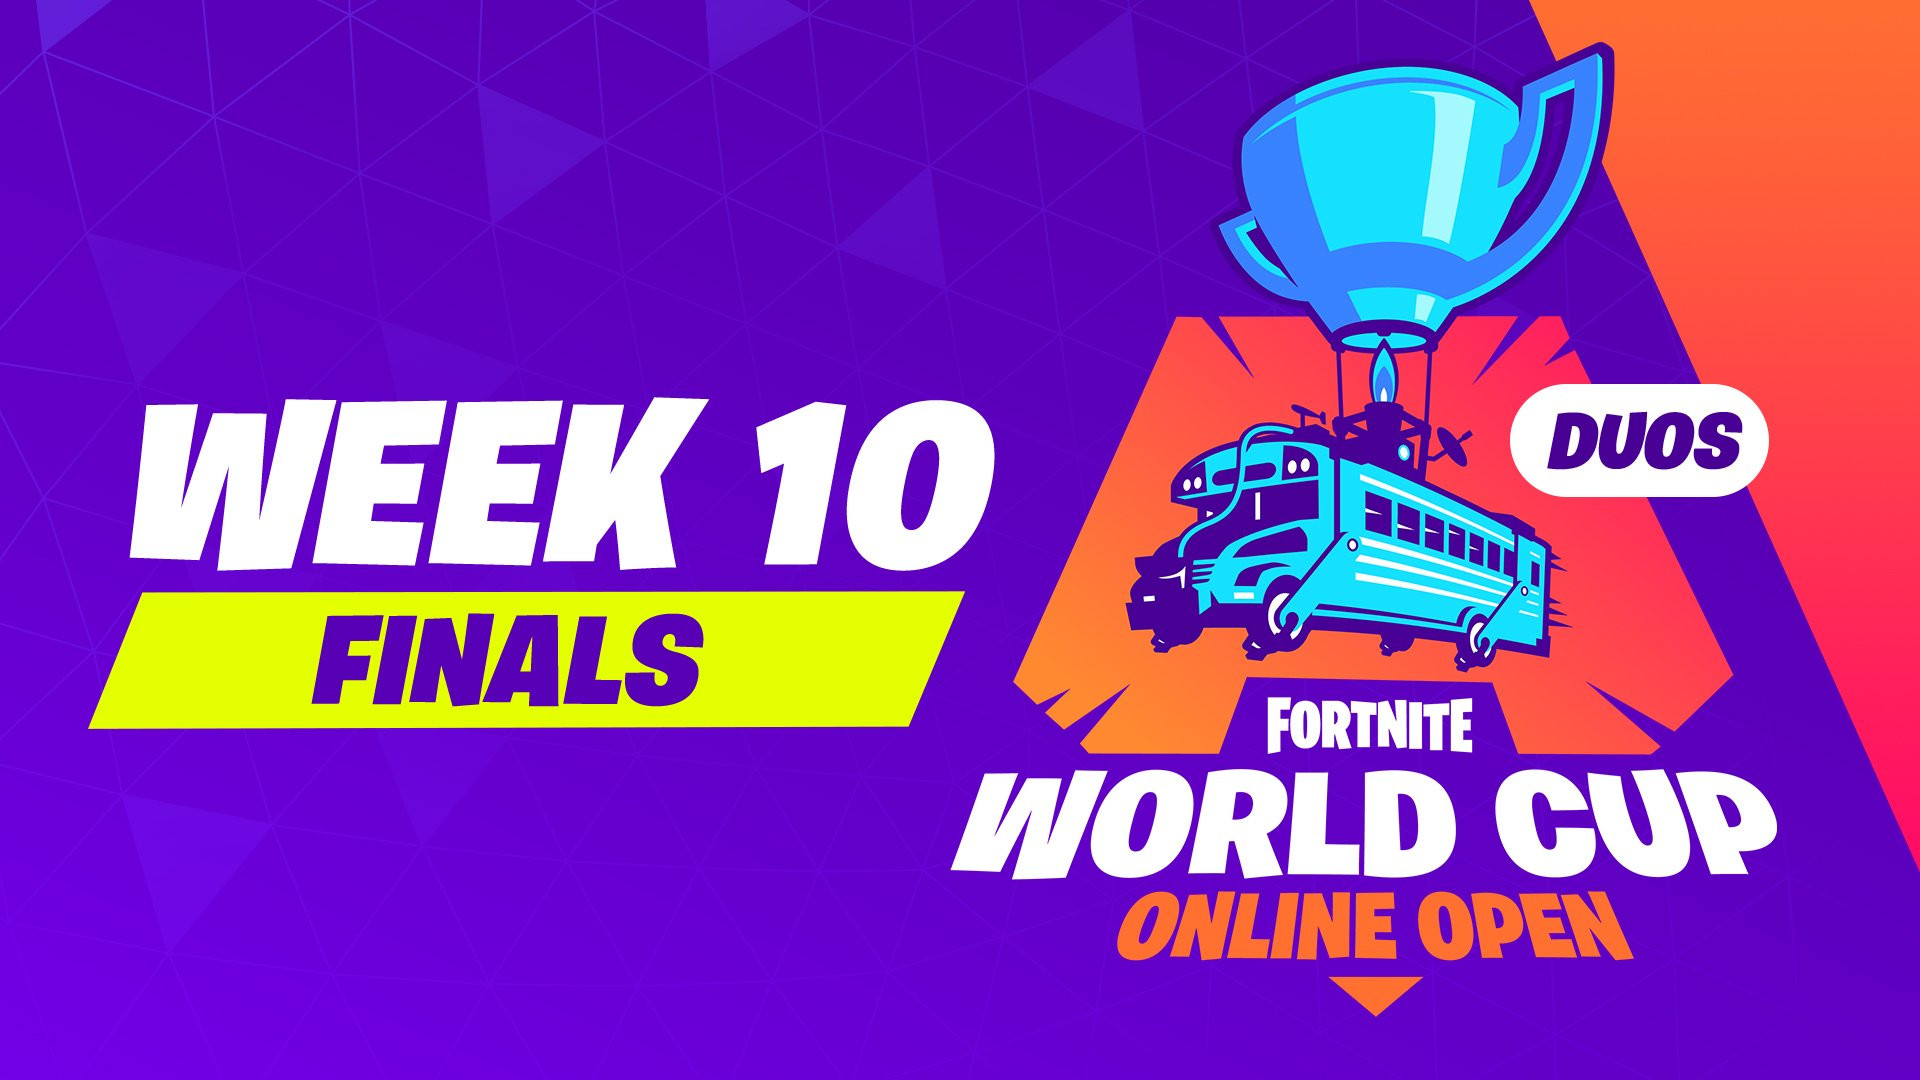 Fortnite World Cup Qualifier Week 10 Finals Na East Duos Top 10 Standings